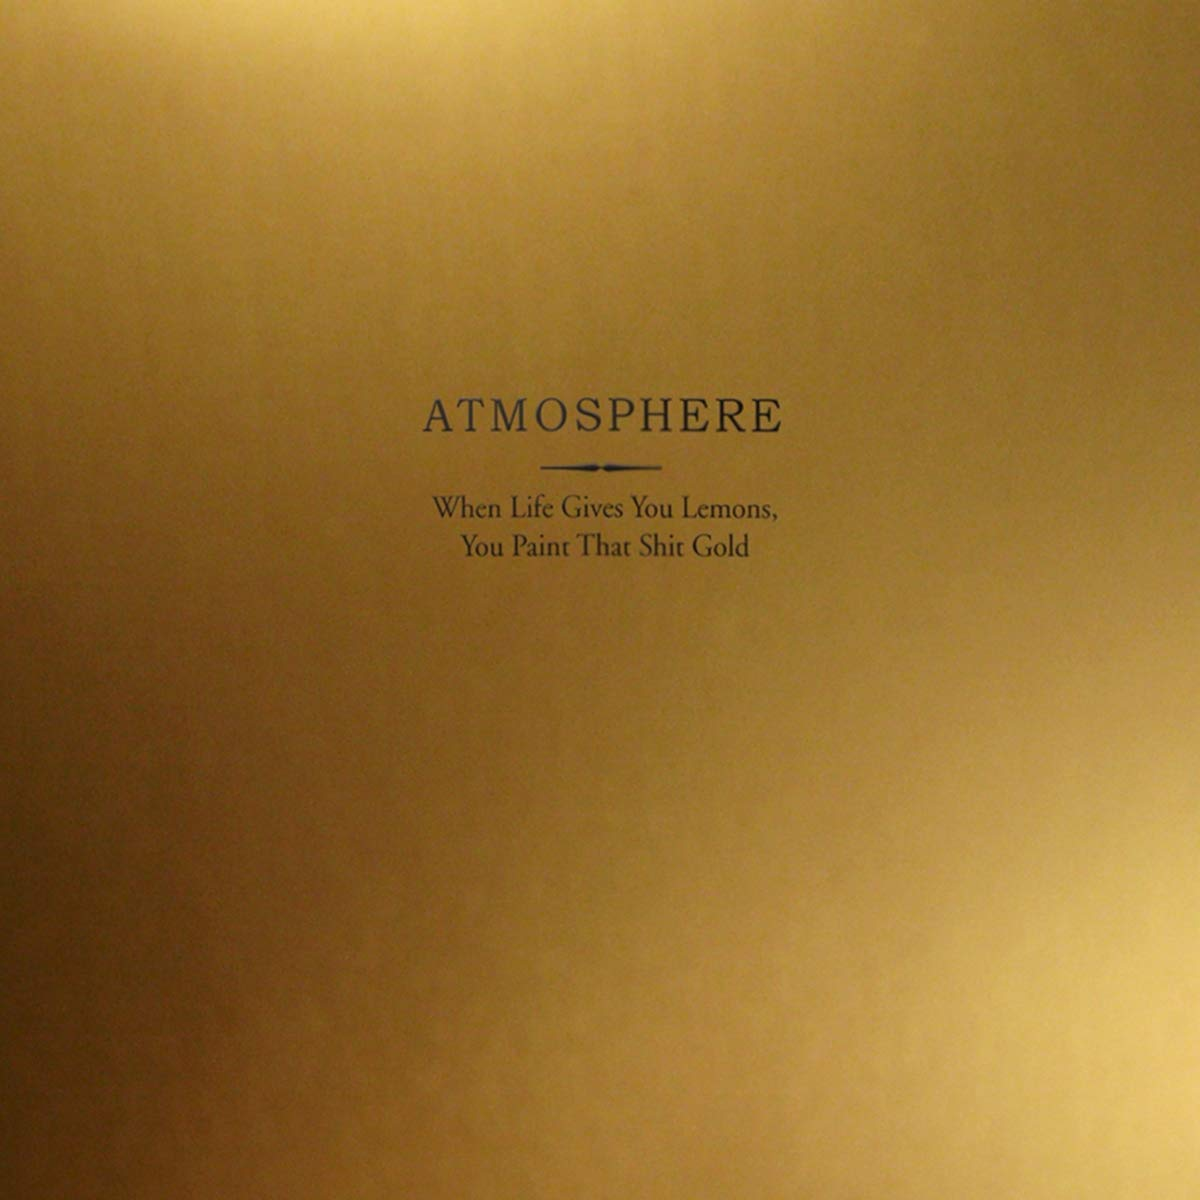 Atmosphere - When Life Gives You Lemons, You Paint That Shit Gold [2LP] (10th Anniversary, Gold Colored Vinyl, lemon-scented labels)